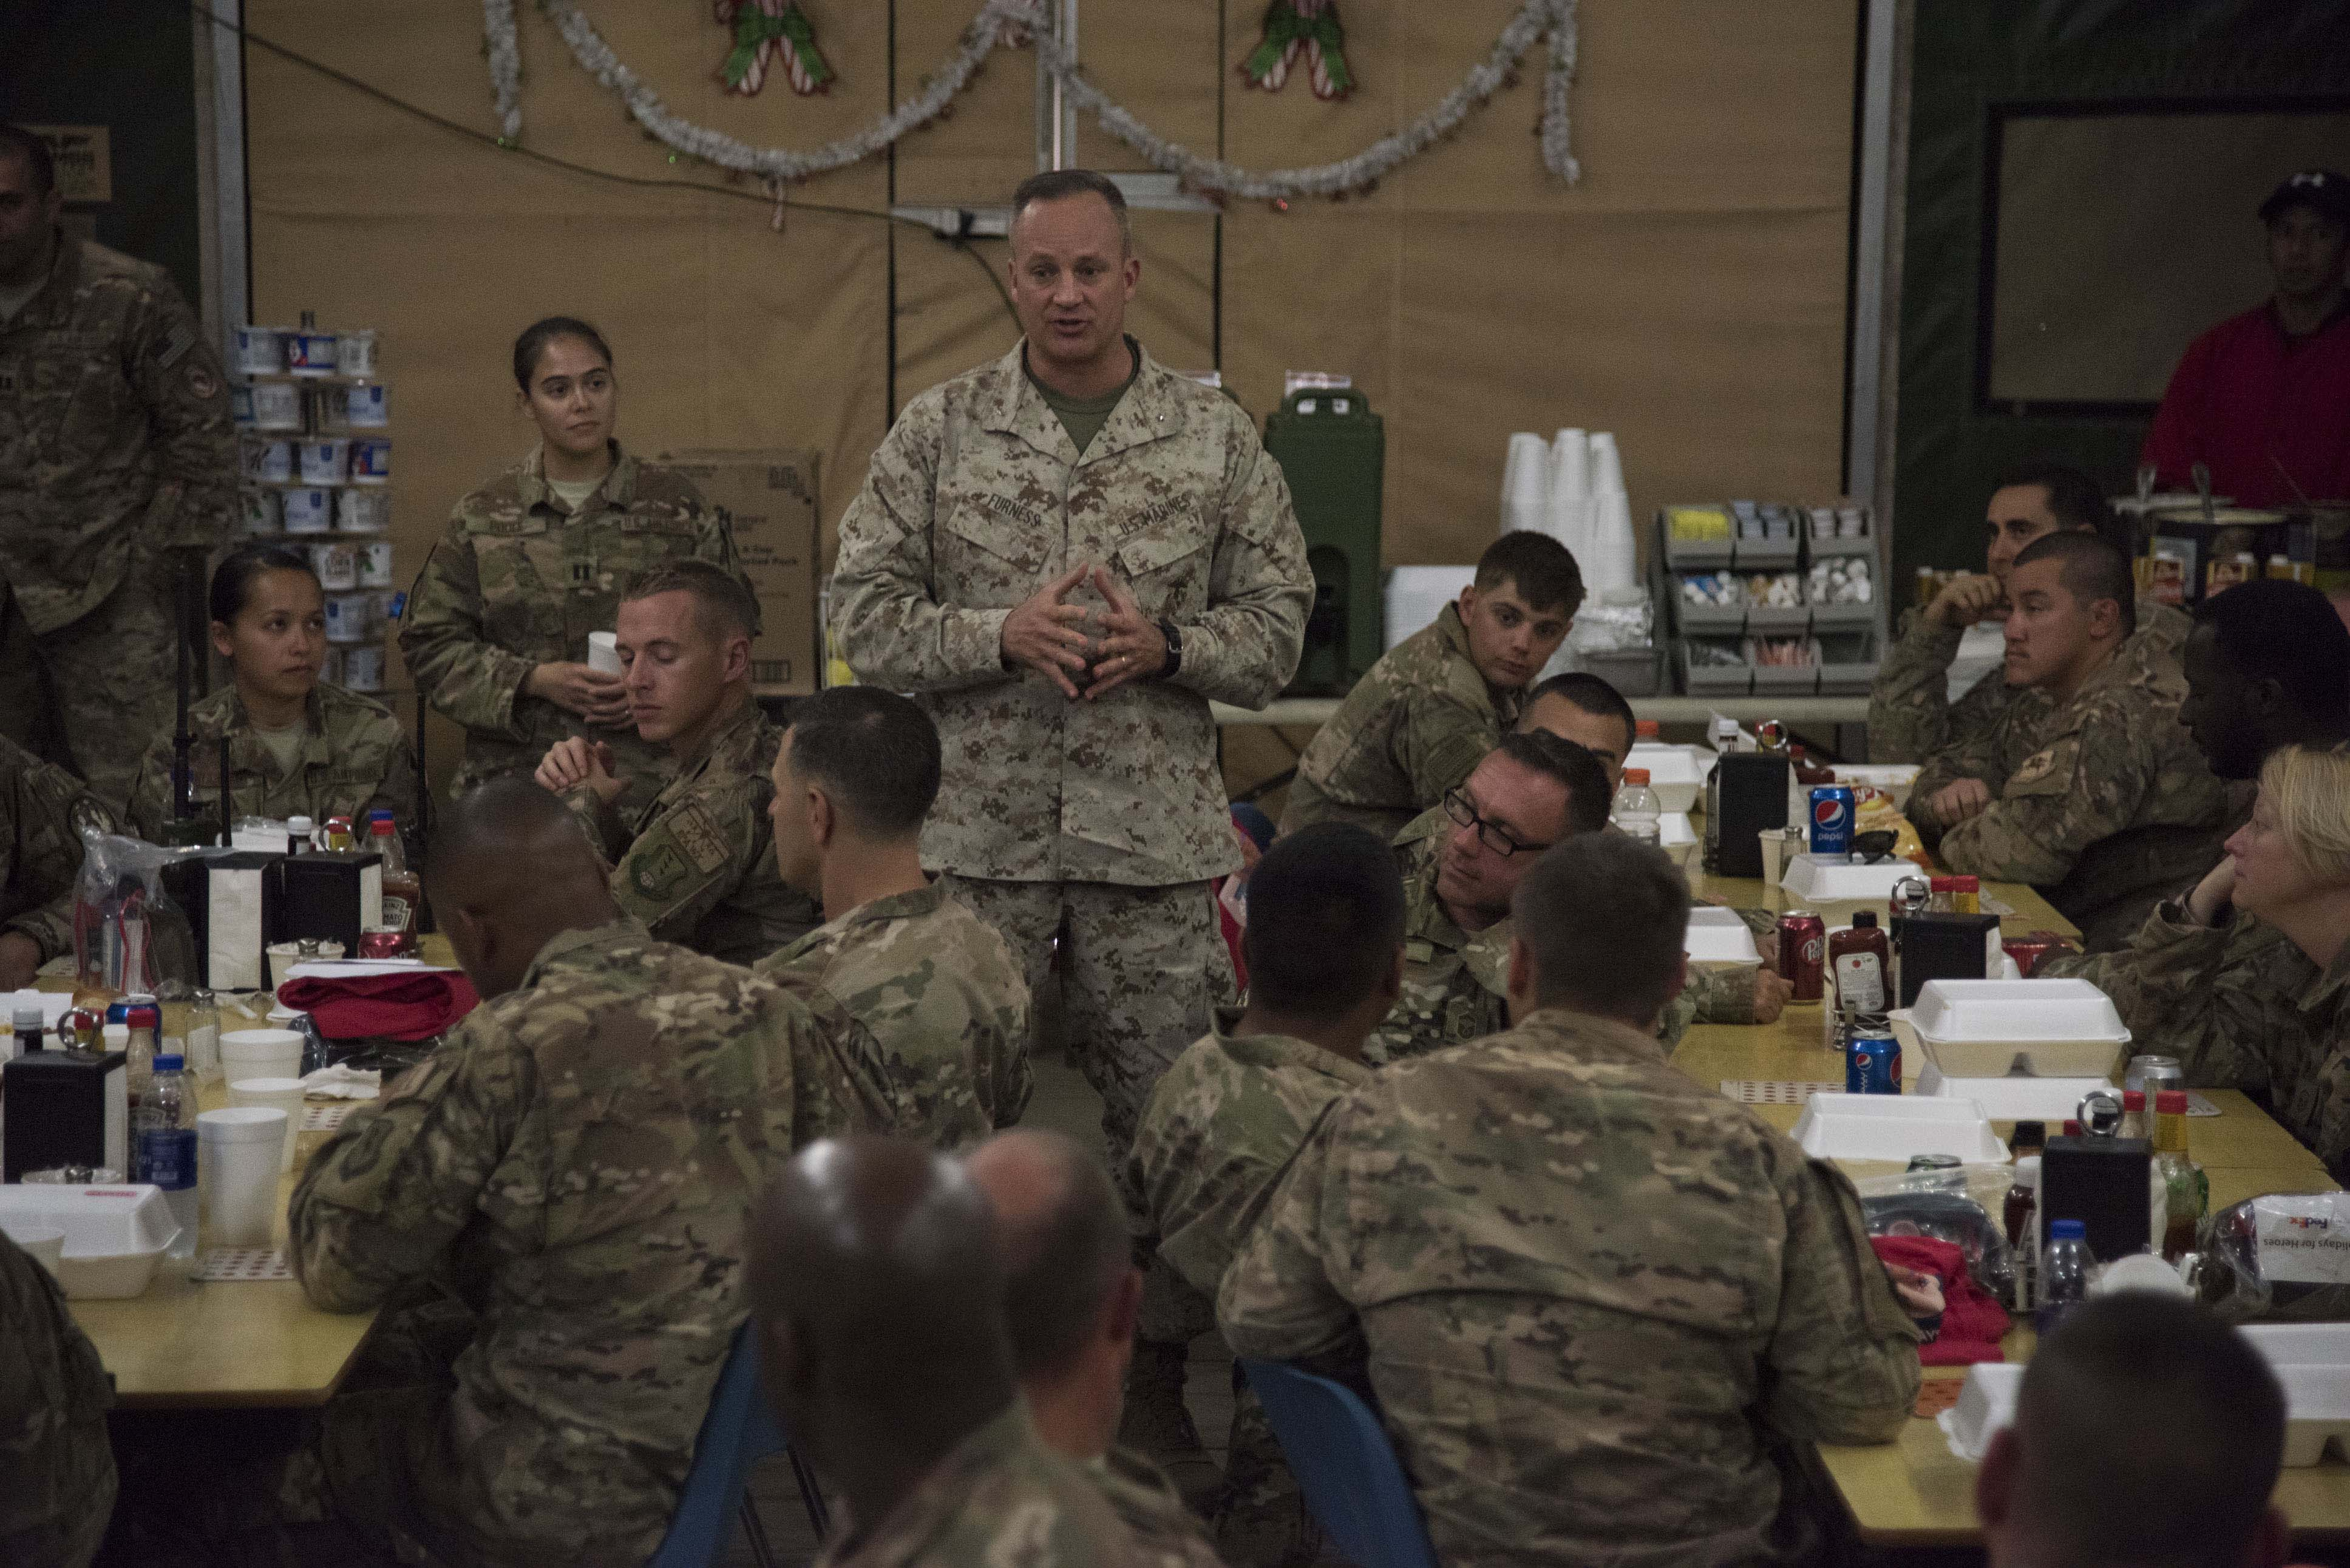 U.S. Marine Corps Brig. Gen. David J. Furness, commander of Combined Joint Task Force – Horn of Africa, speaks with troops after serving them lunch near Camp Lemonnier, Djibouti, Dec. 25, 2017.  Furness spent the afternoon meeting with service members and thanking them for their continued service and sacrifice throughout the holiday season. (U.S. Air National Guard photo by Staff Sgt. Allyson L. Manners)